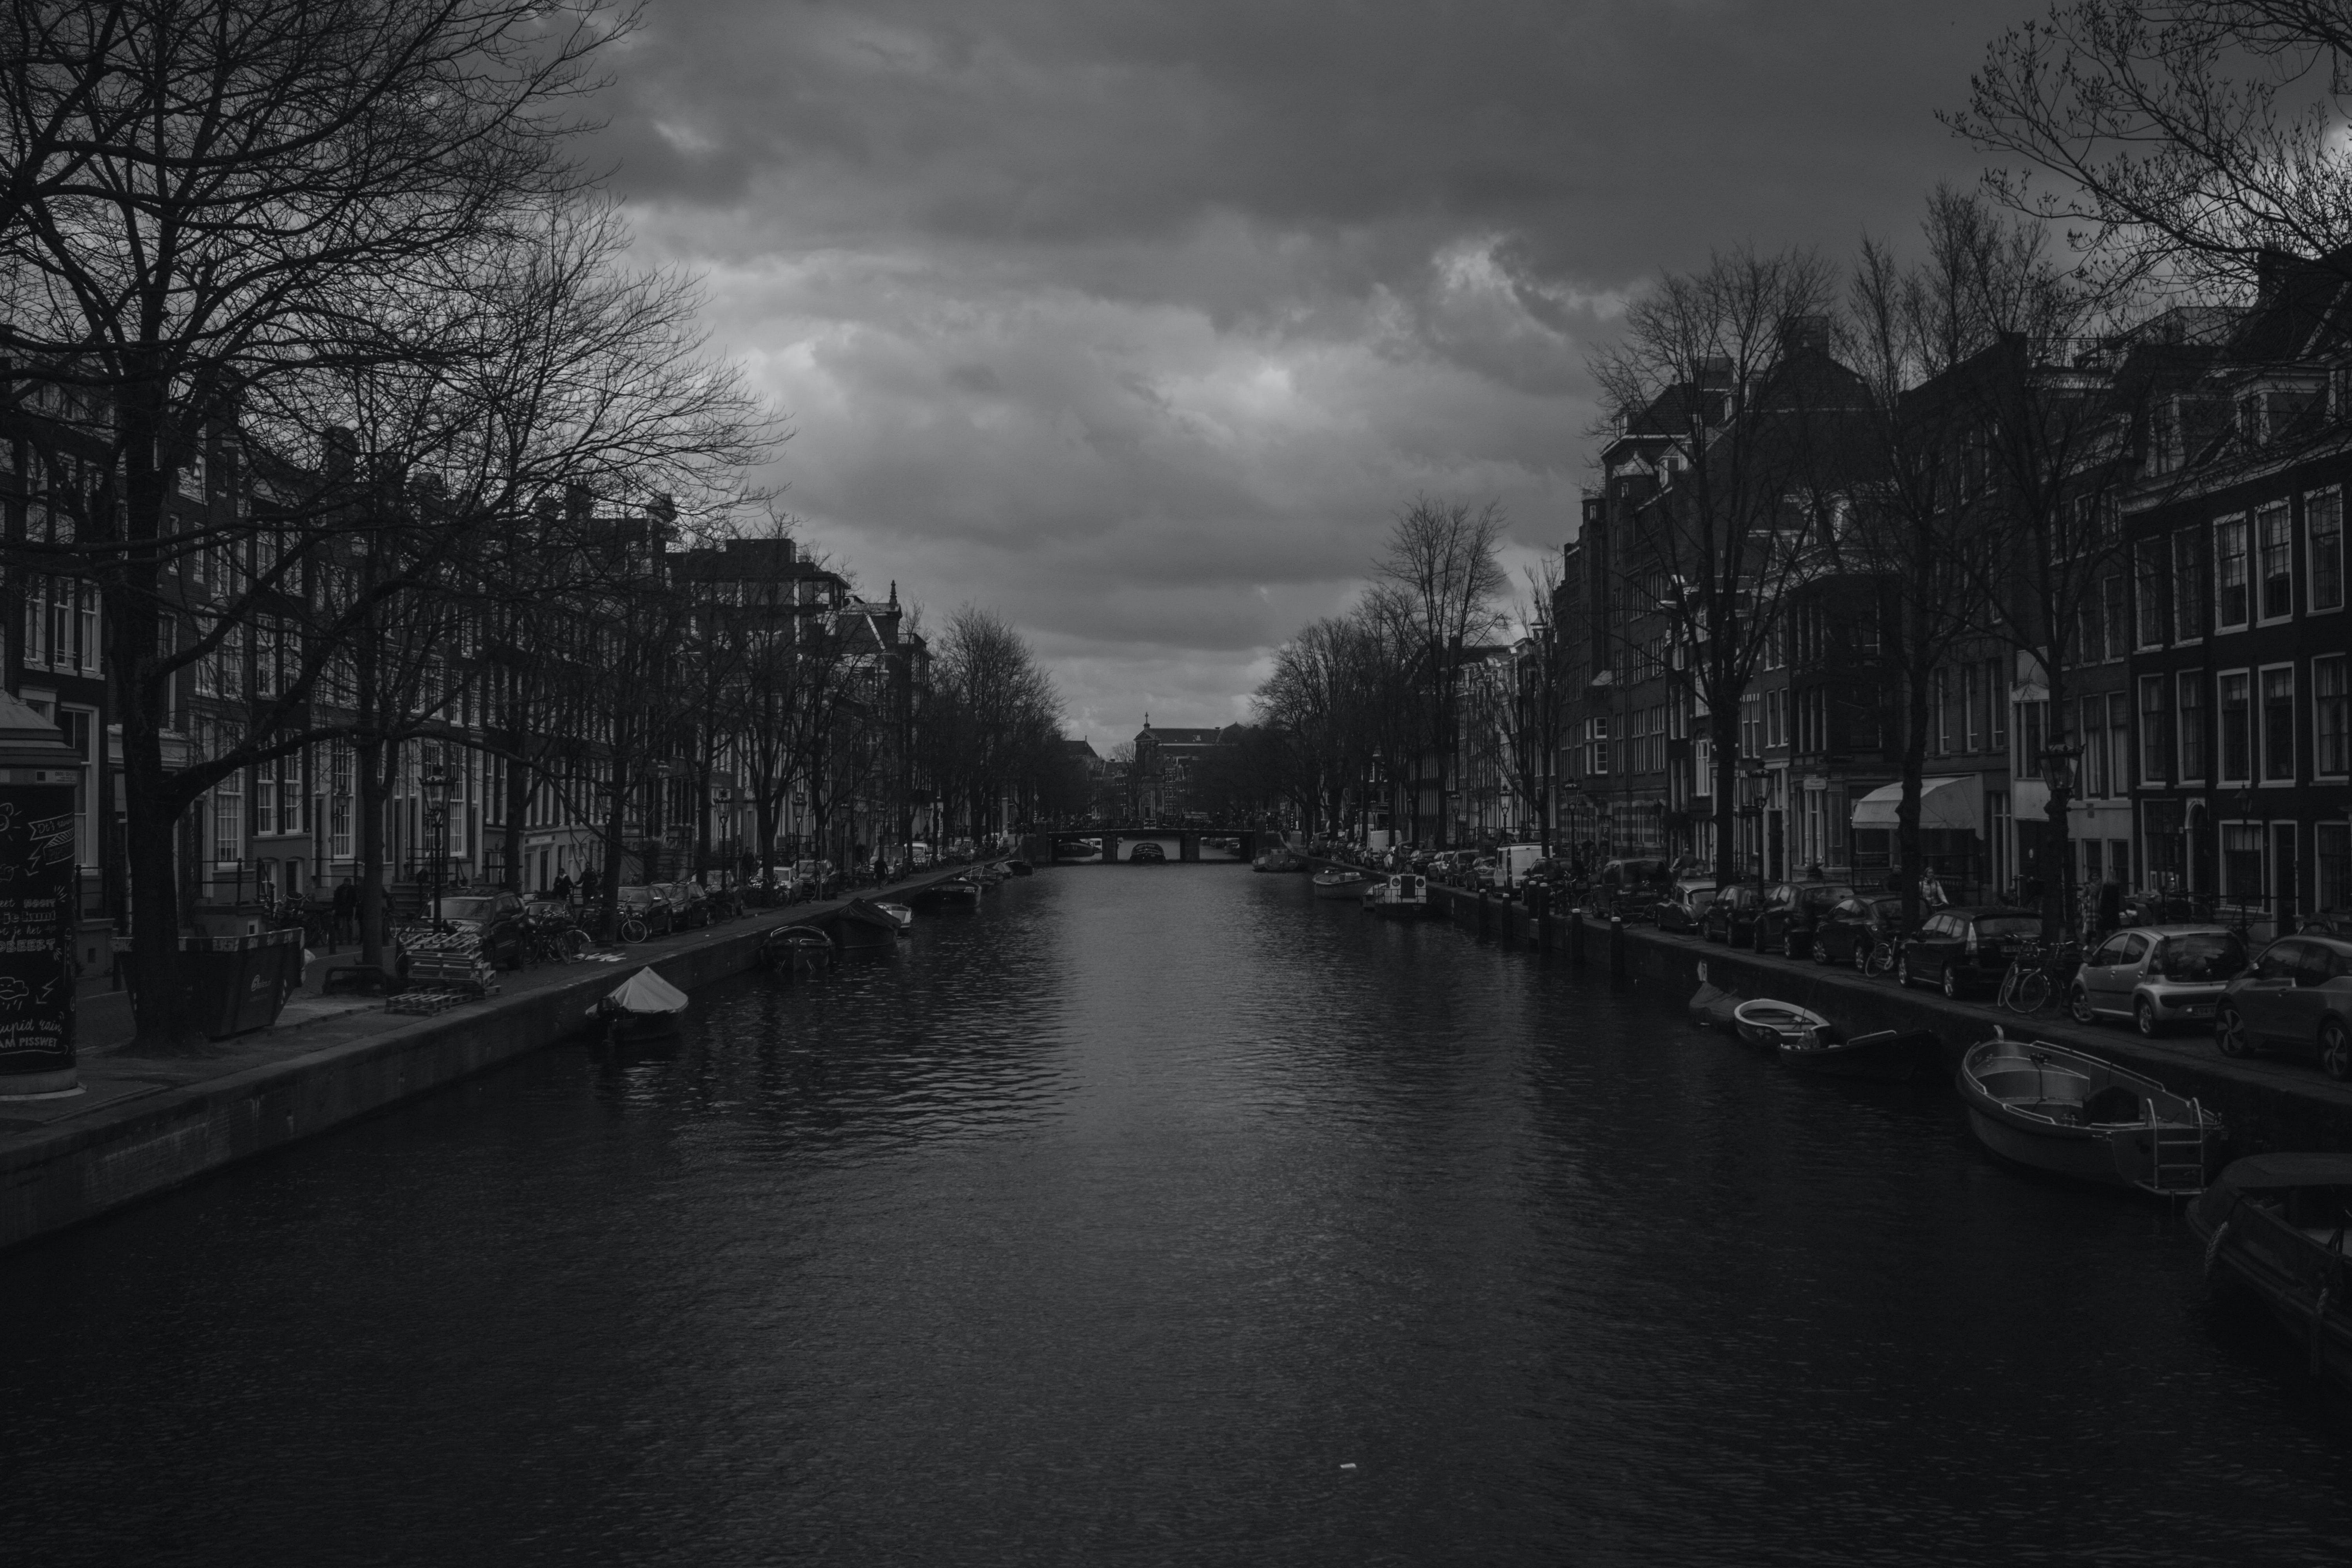 Grayscale Photography of River Near Buildings